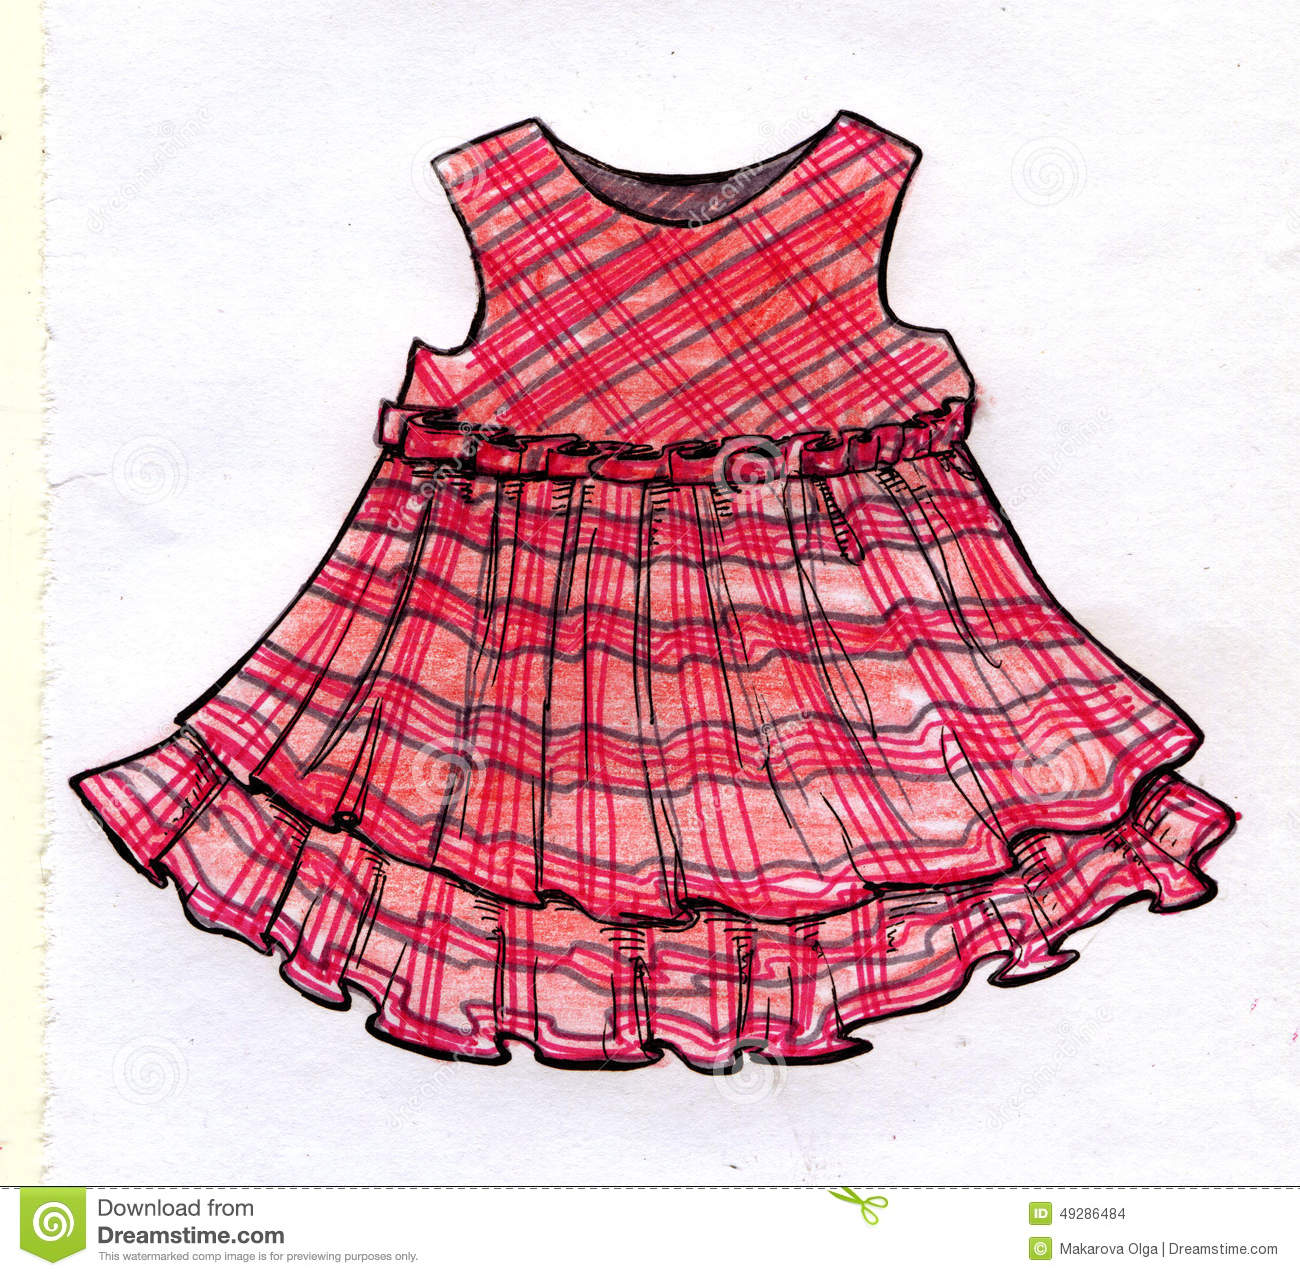 Hand drawn ink pencil and markers sketch of a pink girly dress design with grey and purple stripes and a folded ribbon at the waist